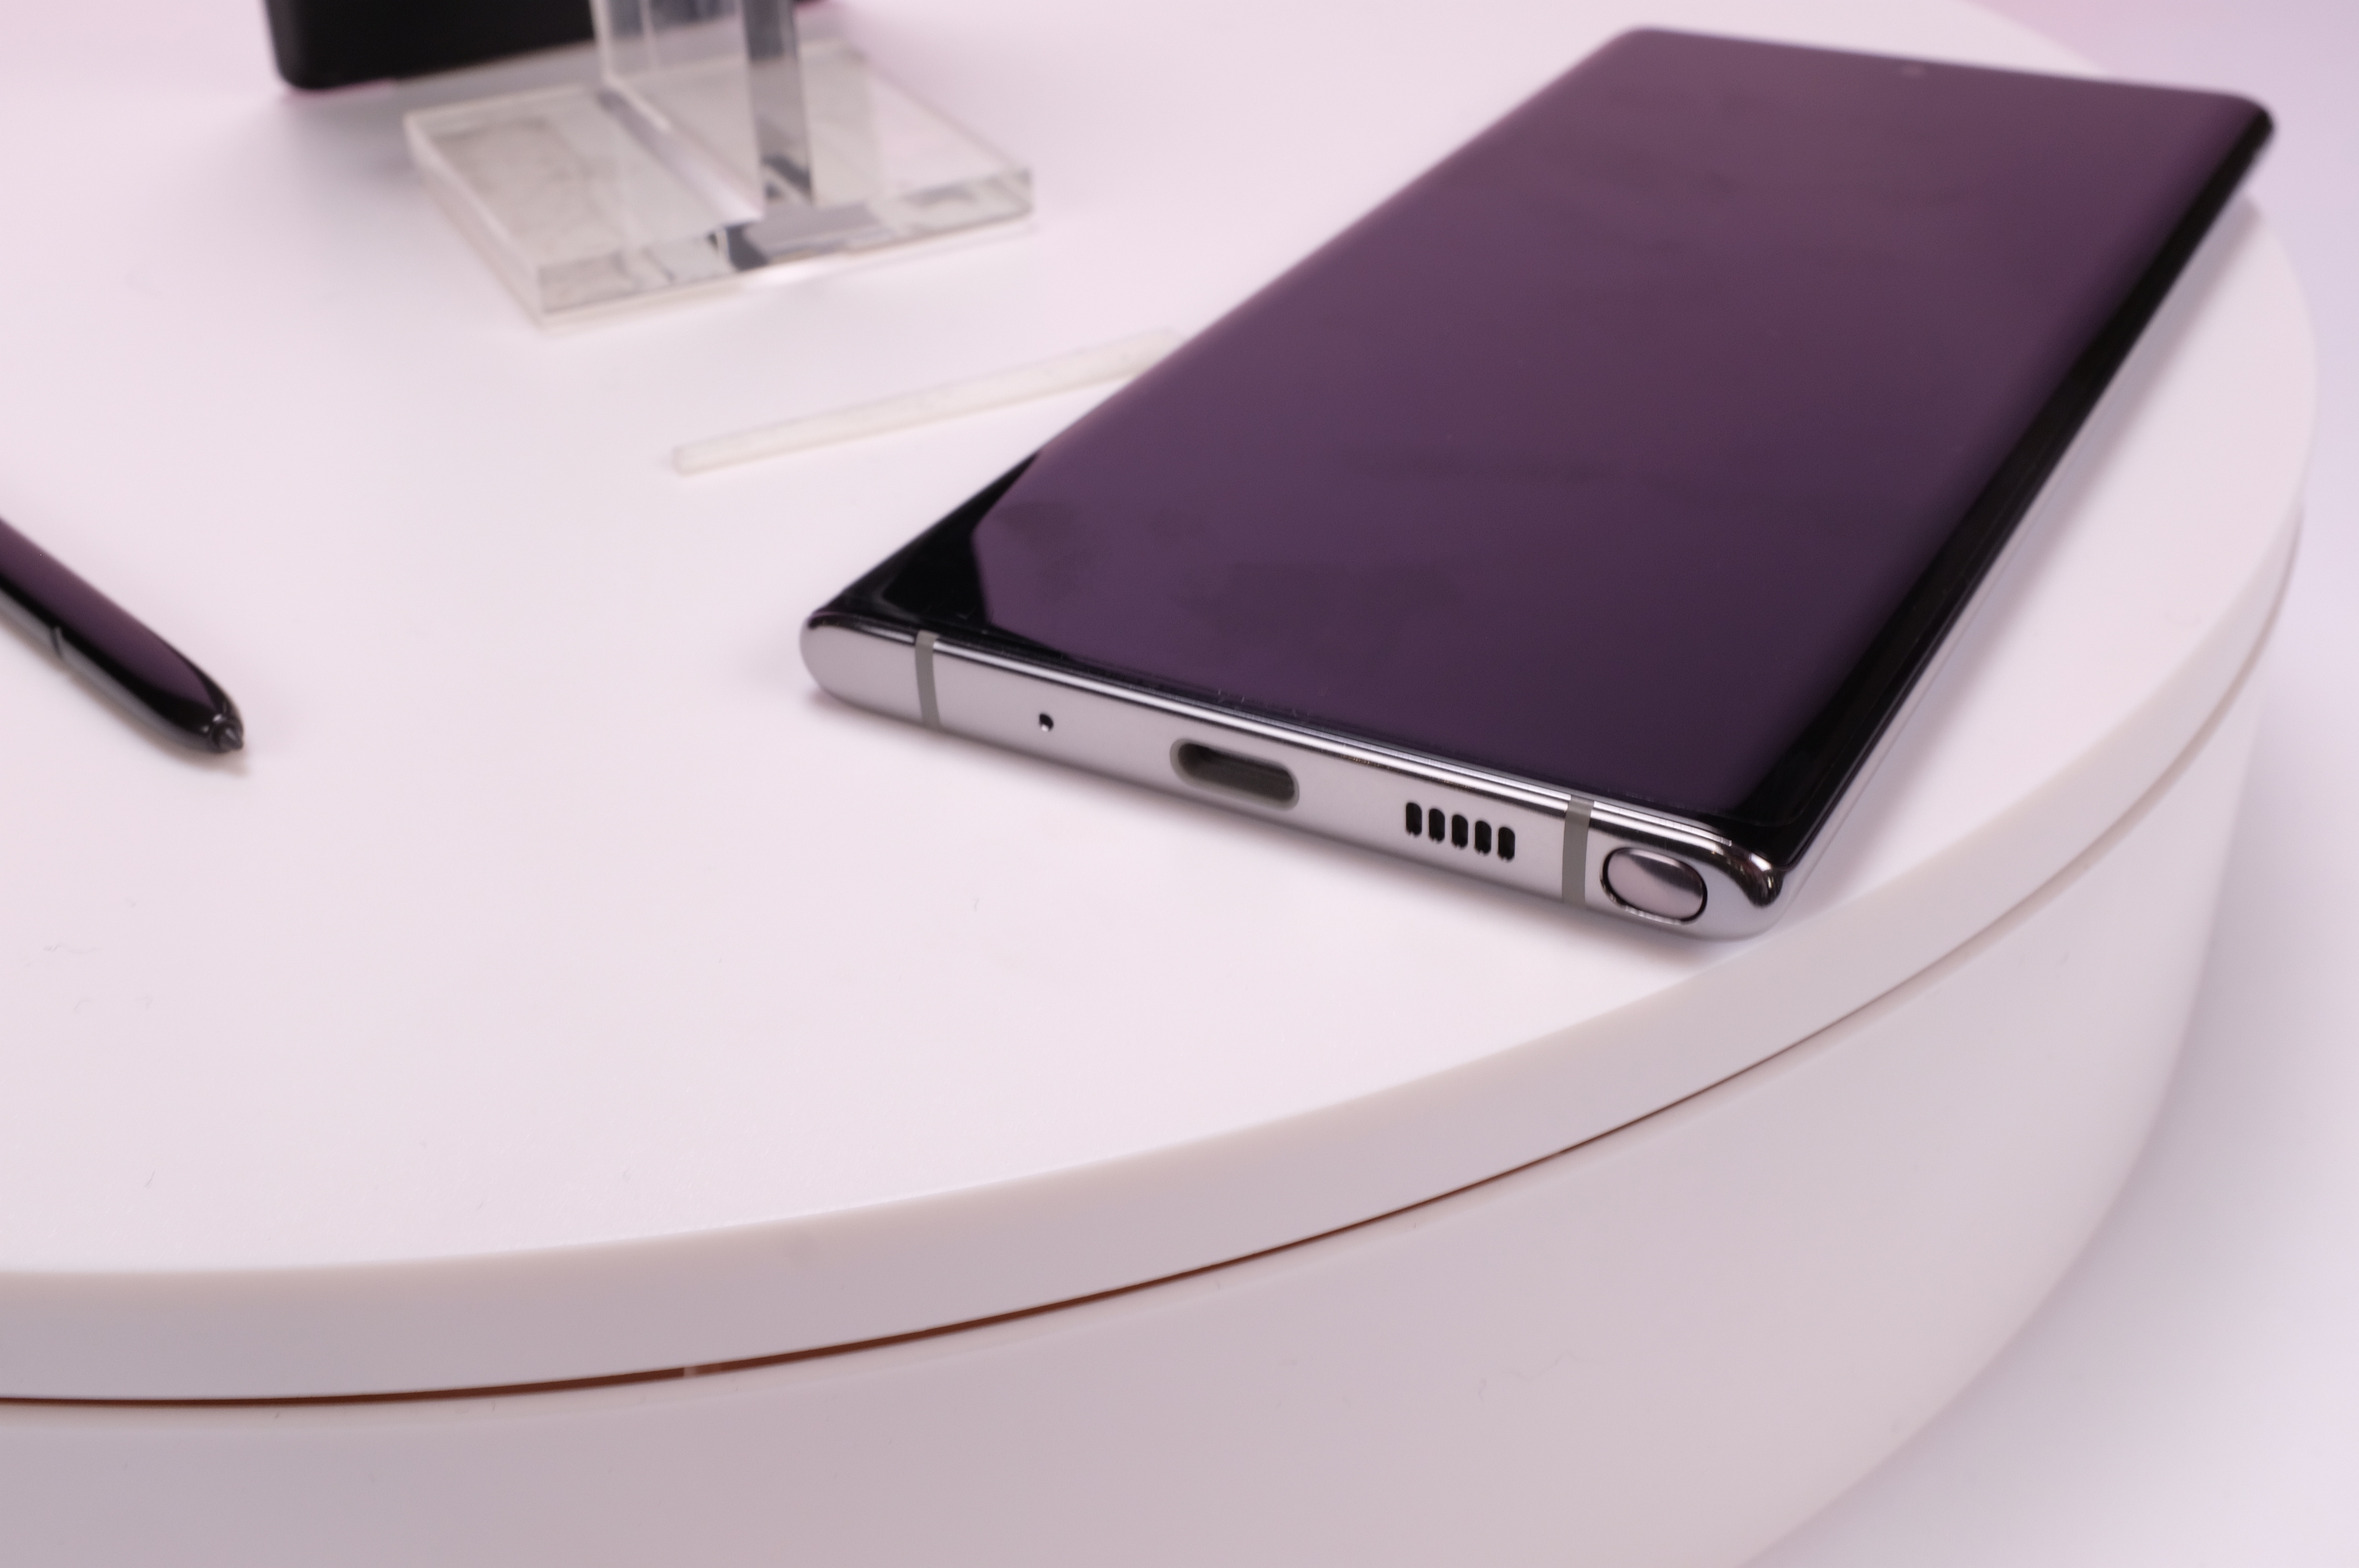 This is Samsung's Galaxy Note 10 and 10+